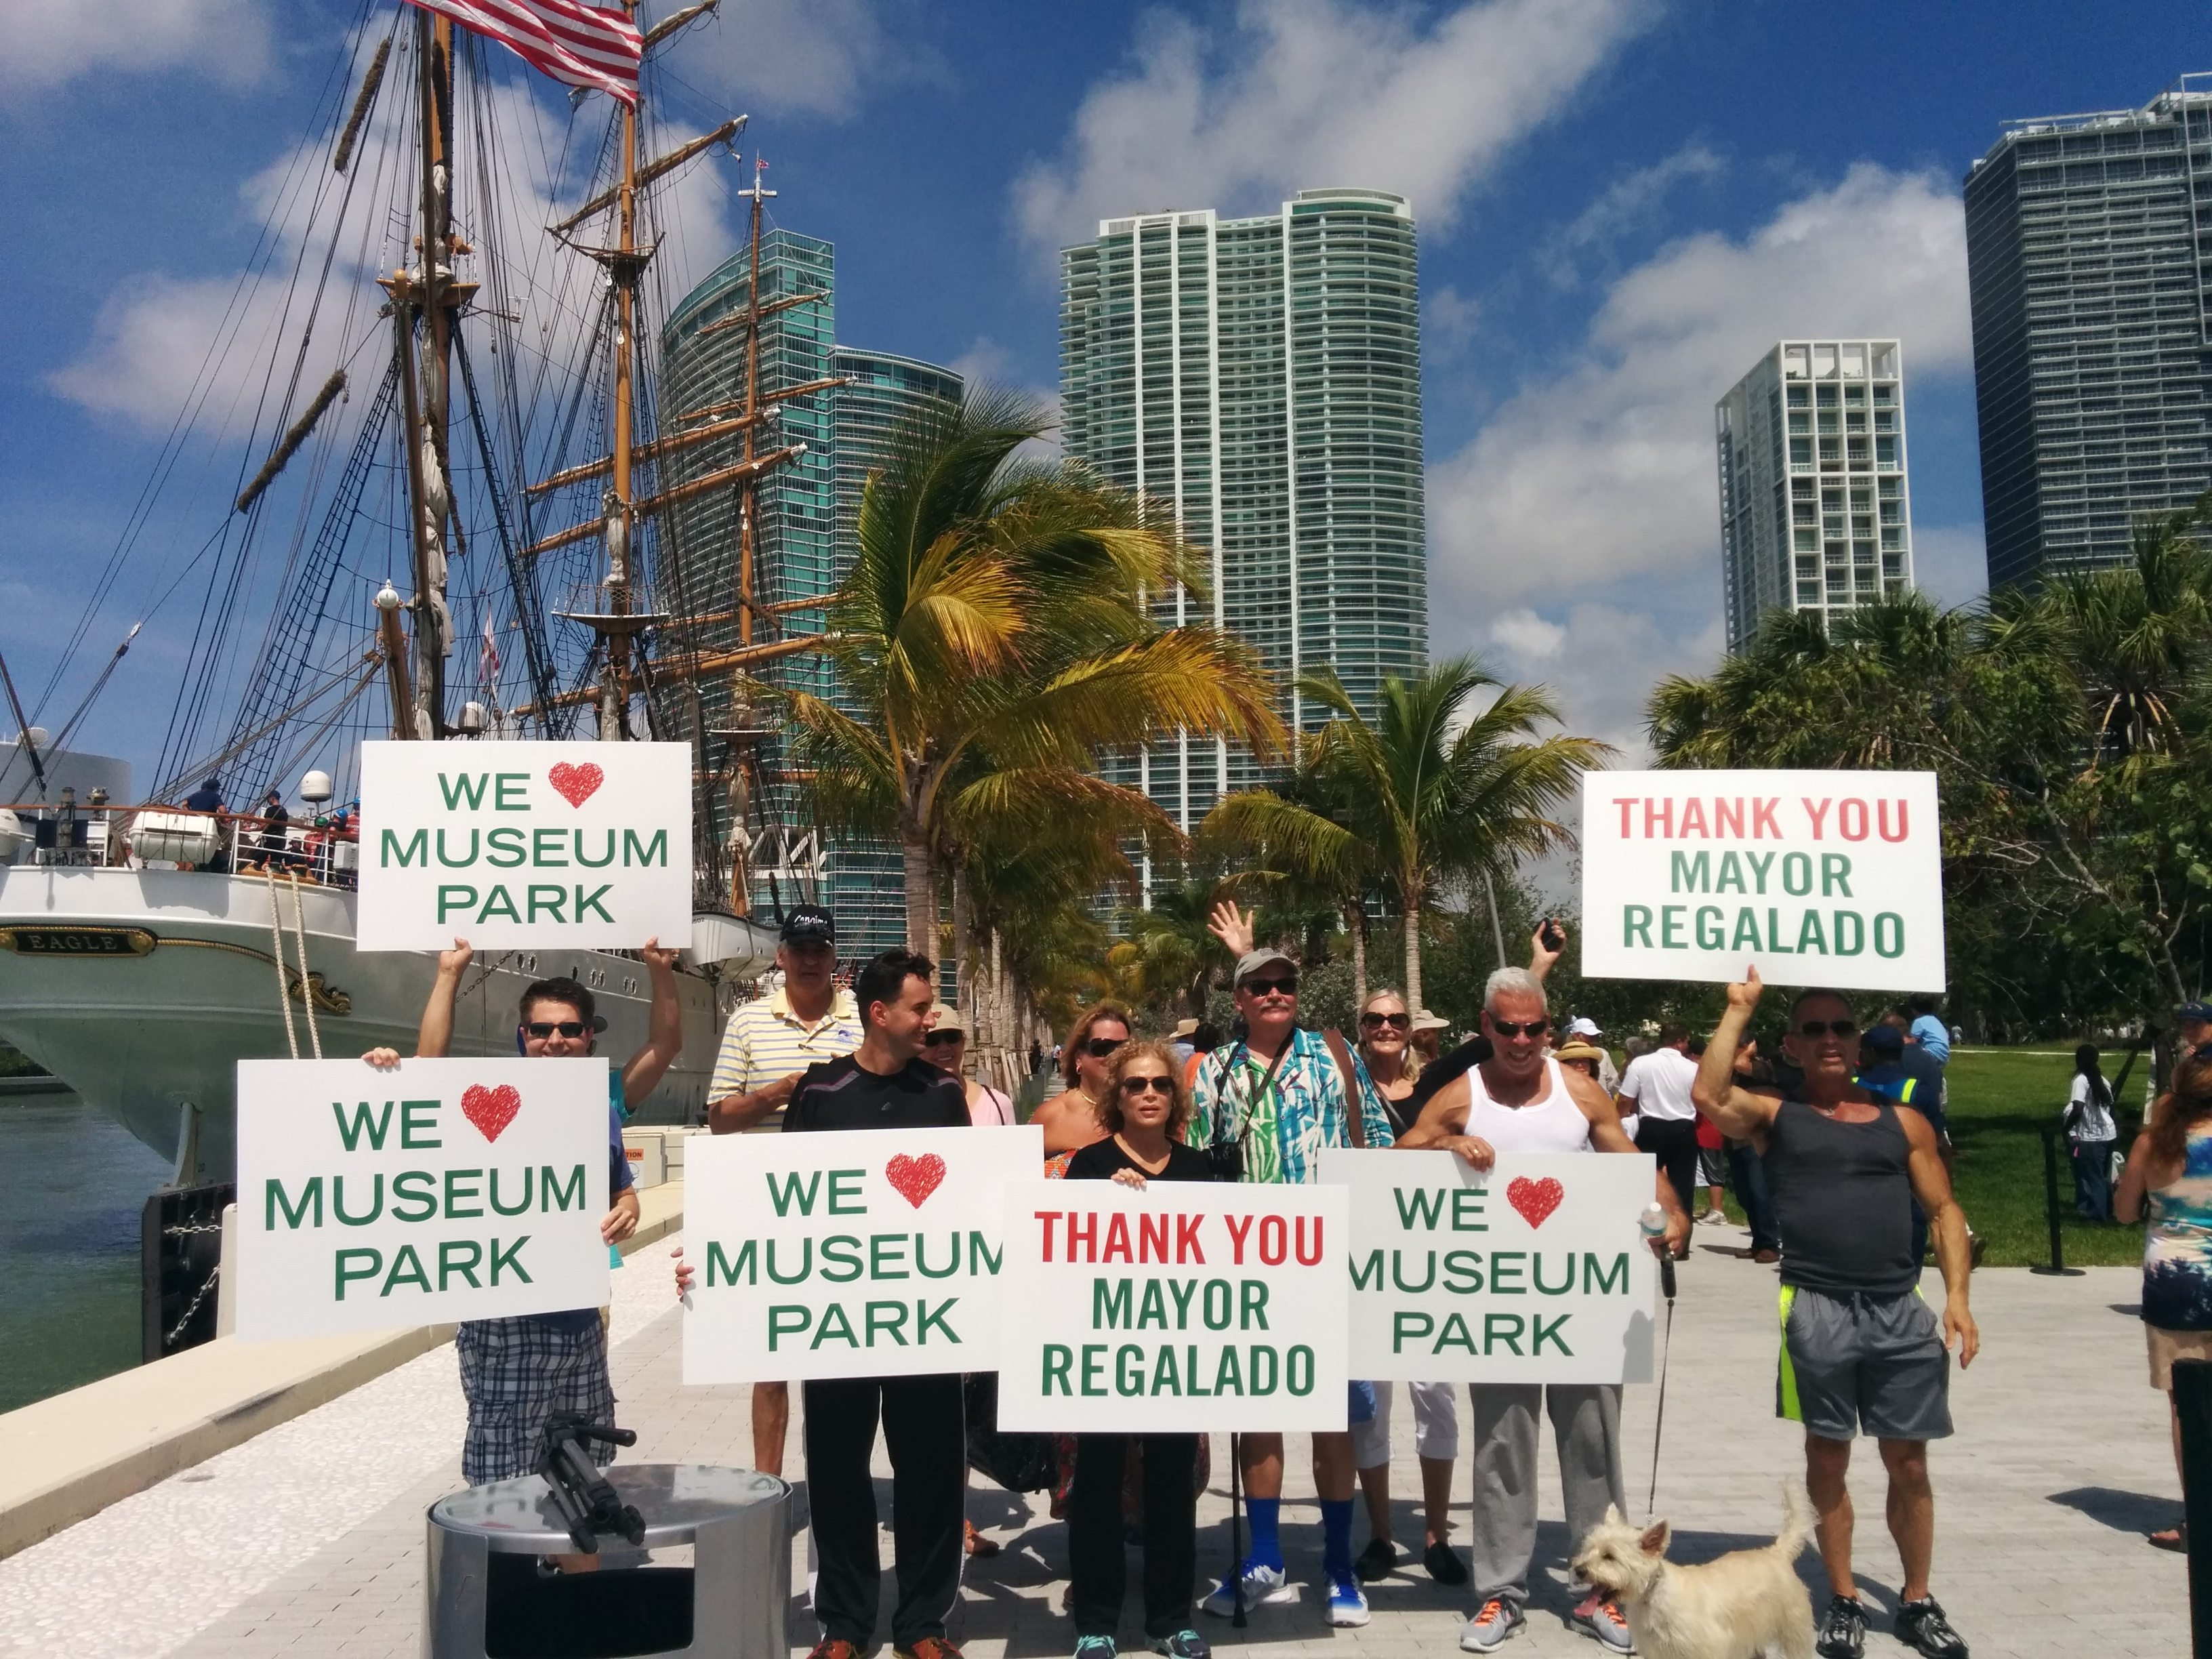 Miami residents showing support and appreciation at Museum Park opening ceremony